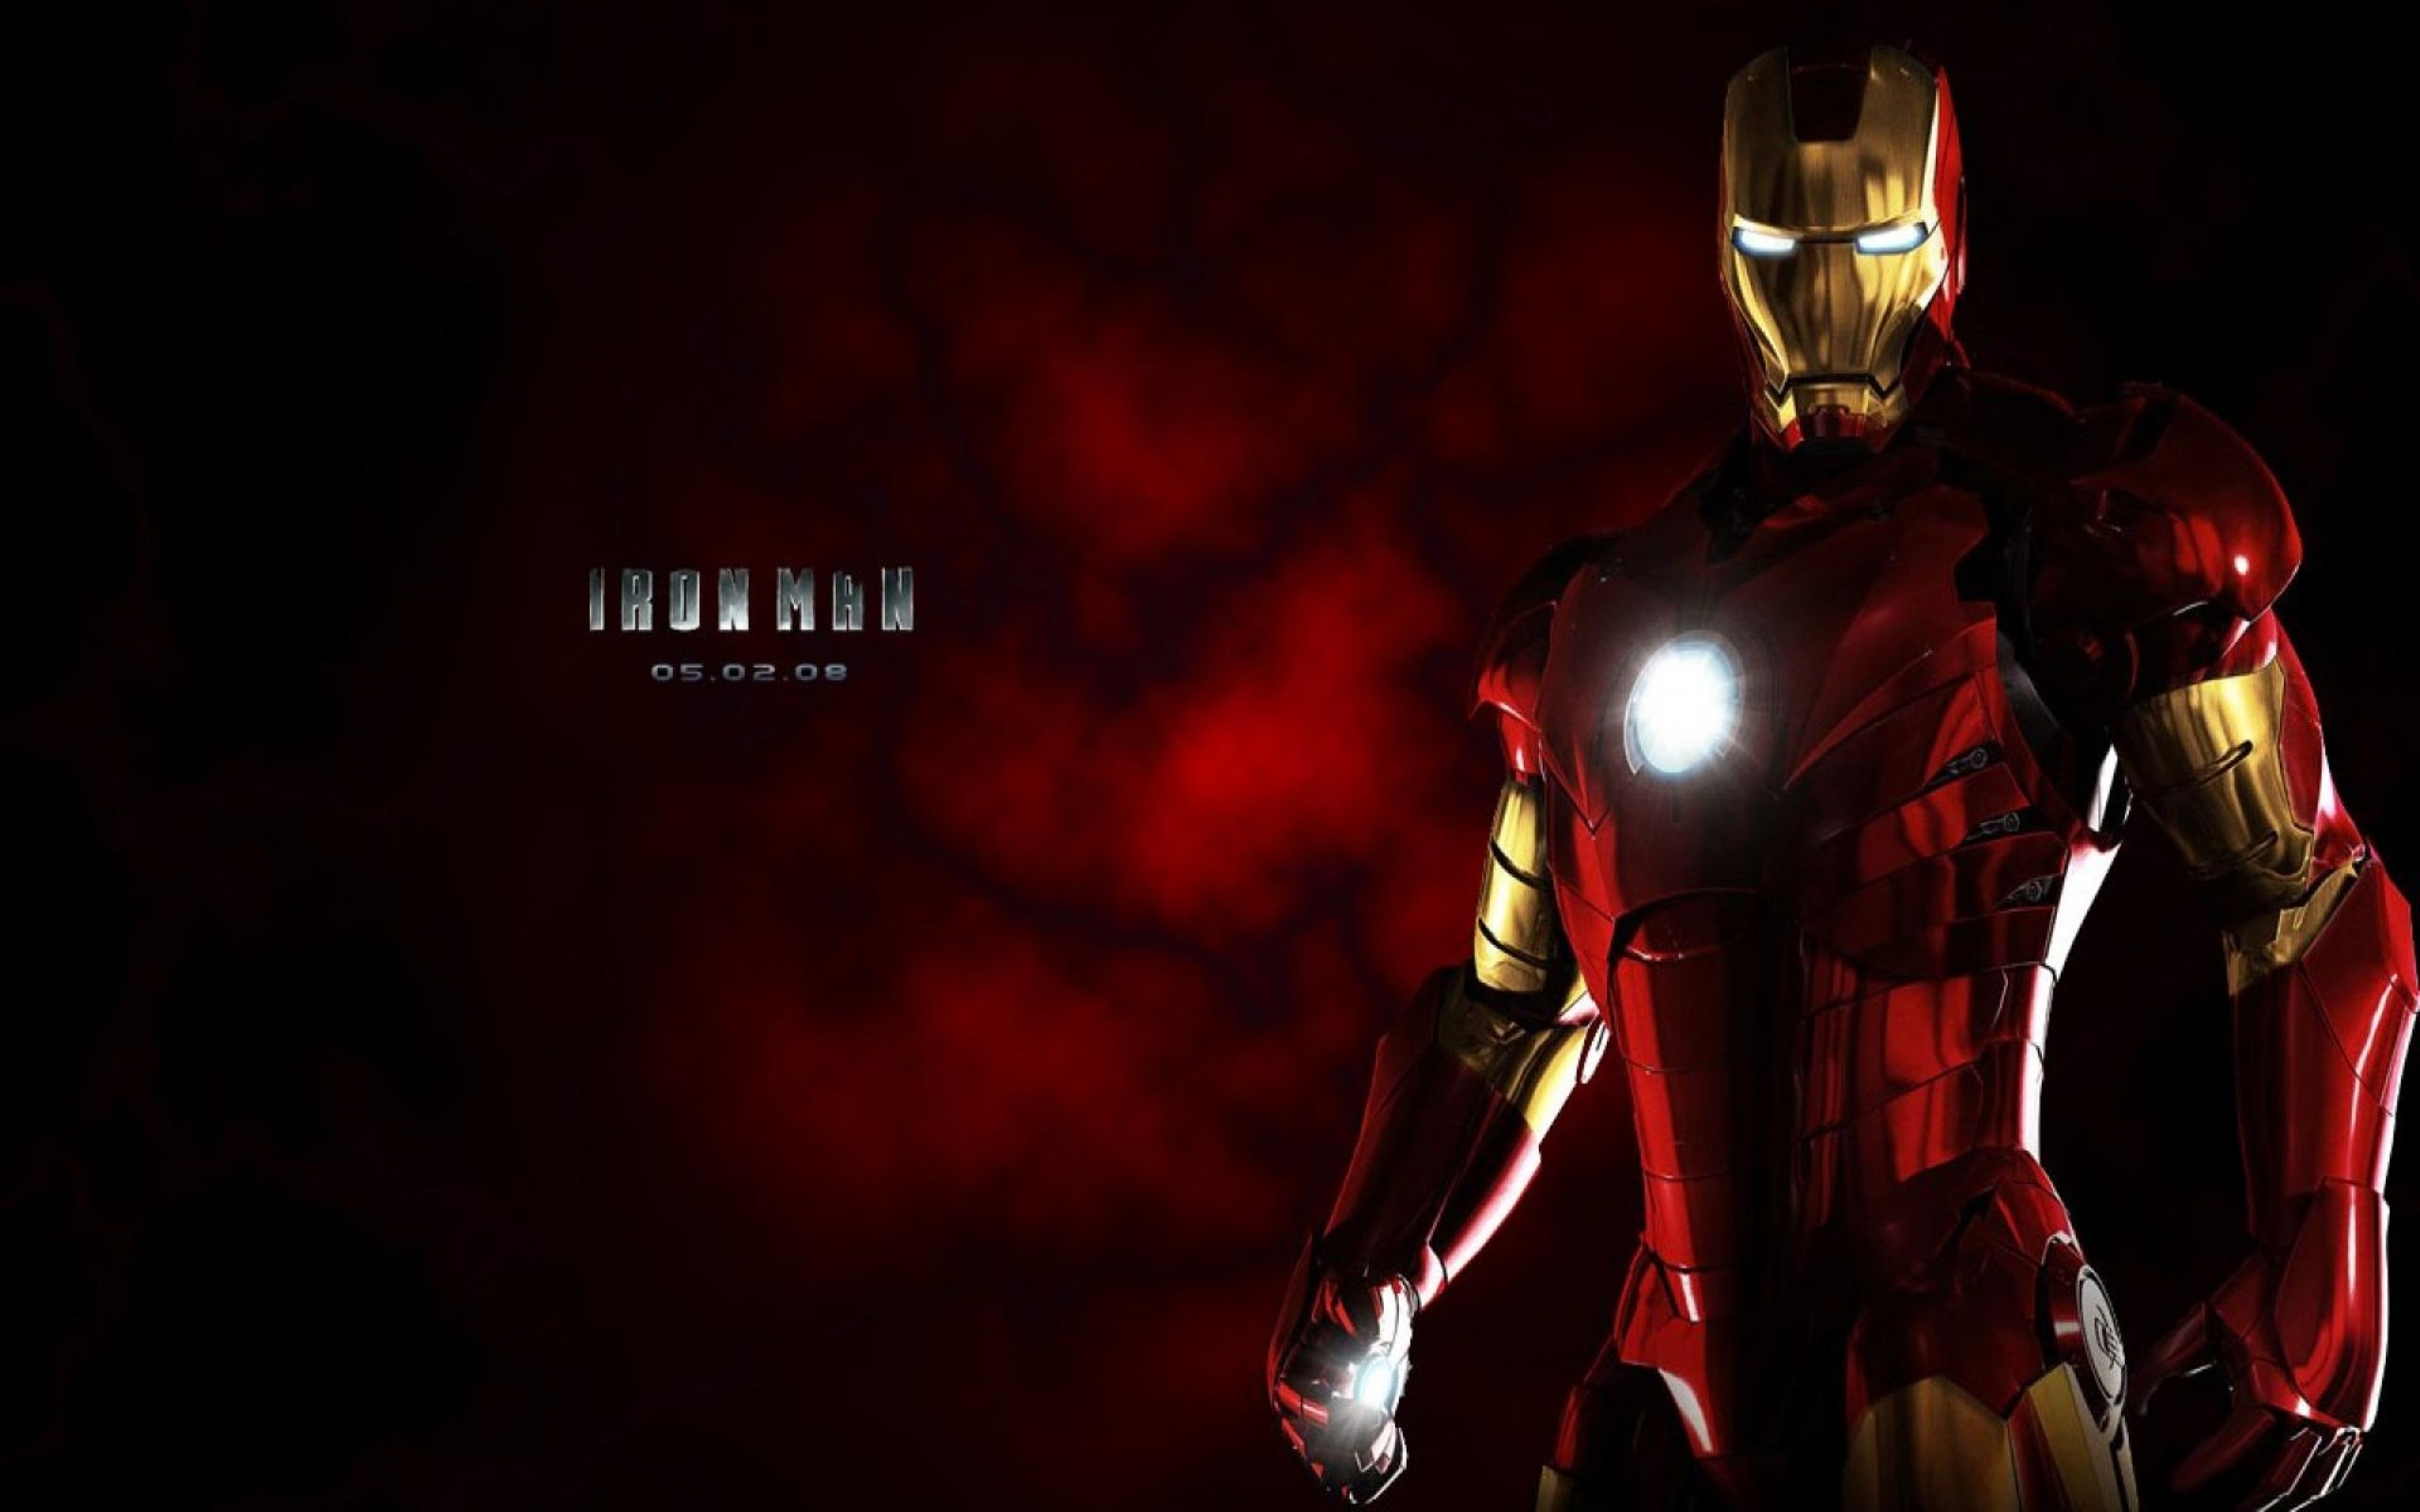 jarvis iron man wallpaper hd 74 images. Black Bedroom Furniture Sets. Home Design Ideas